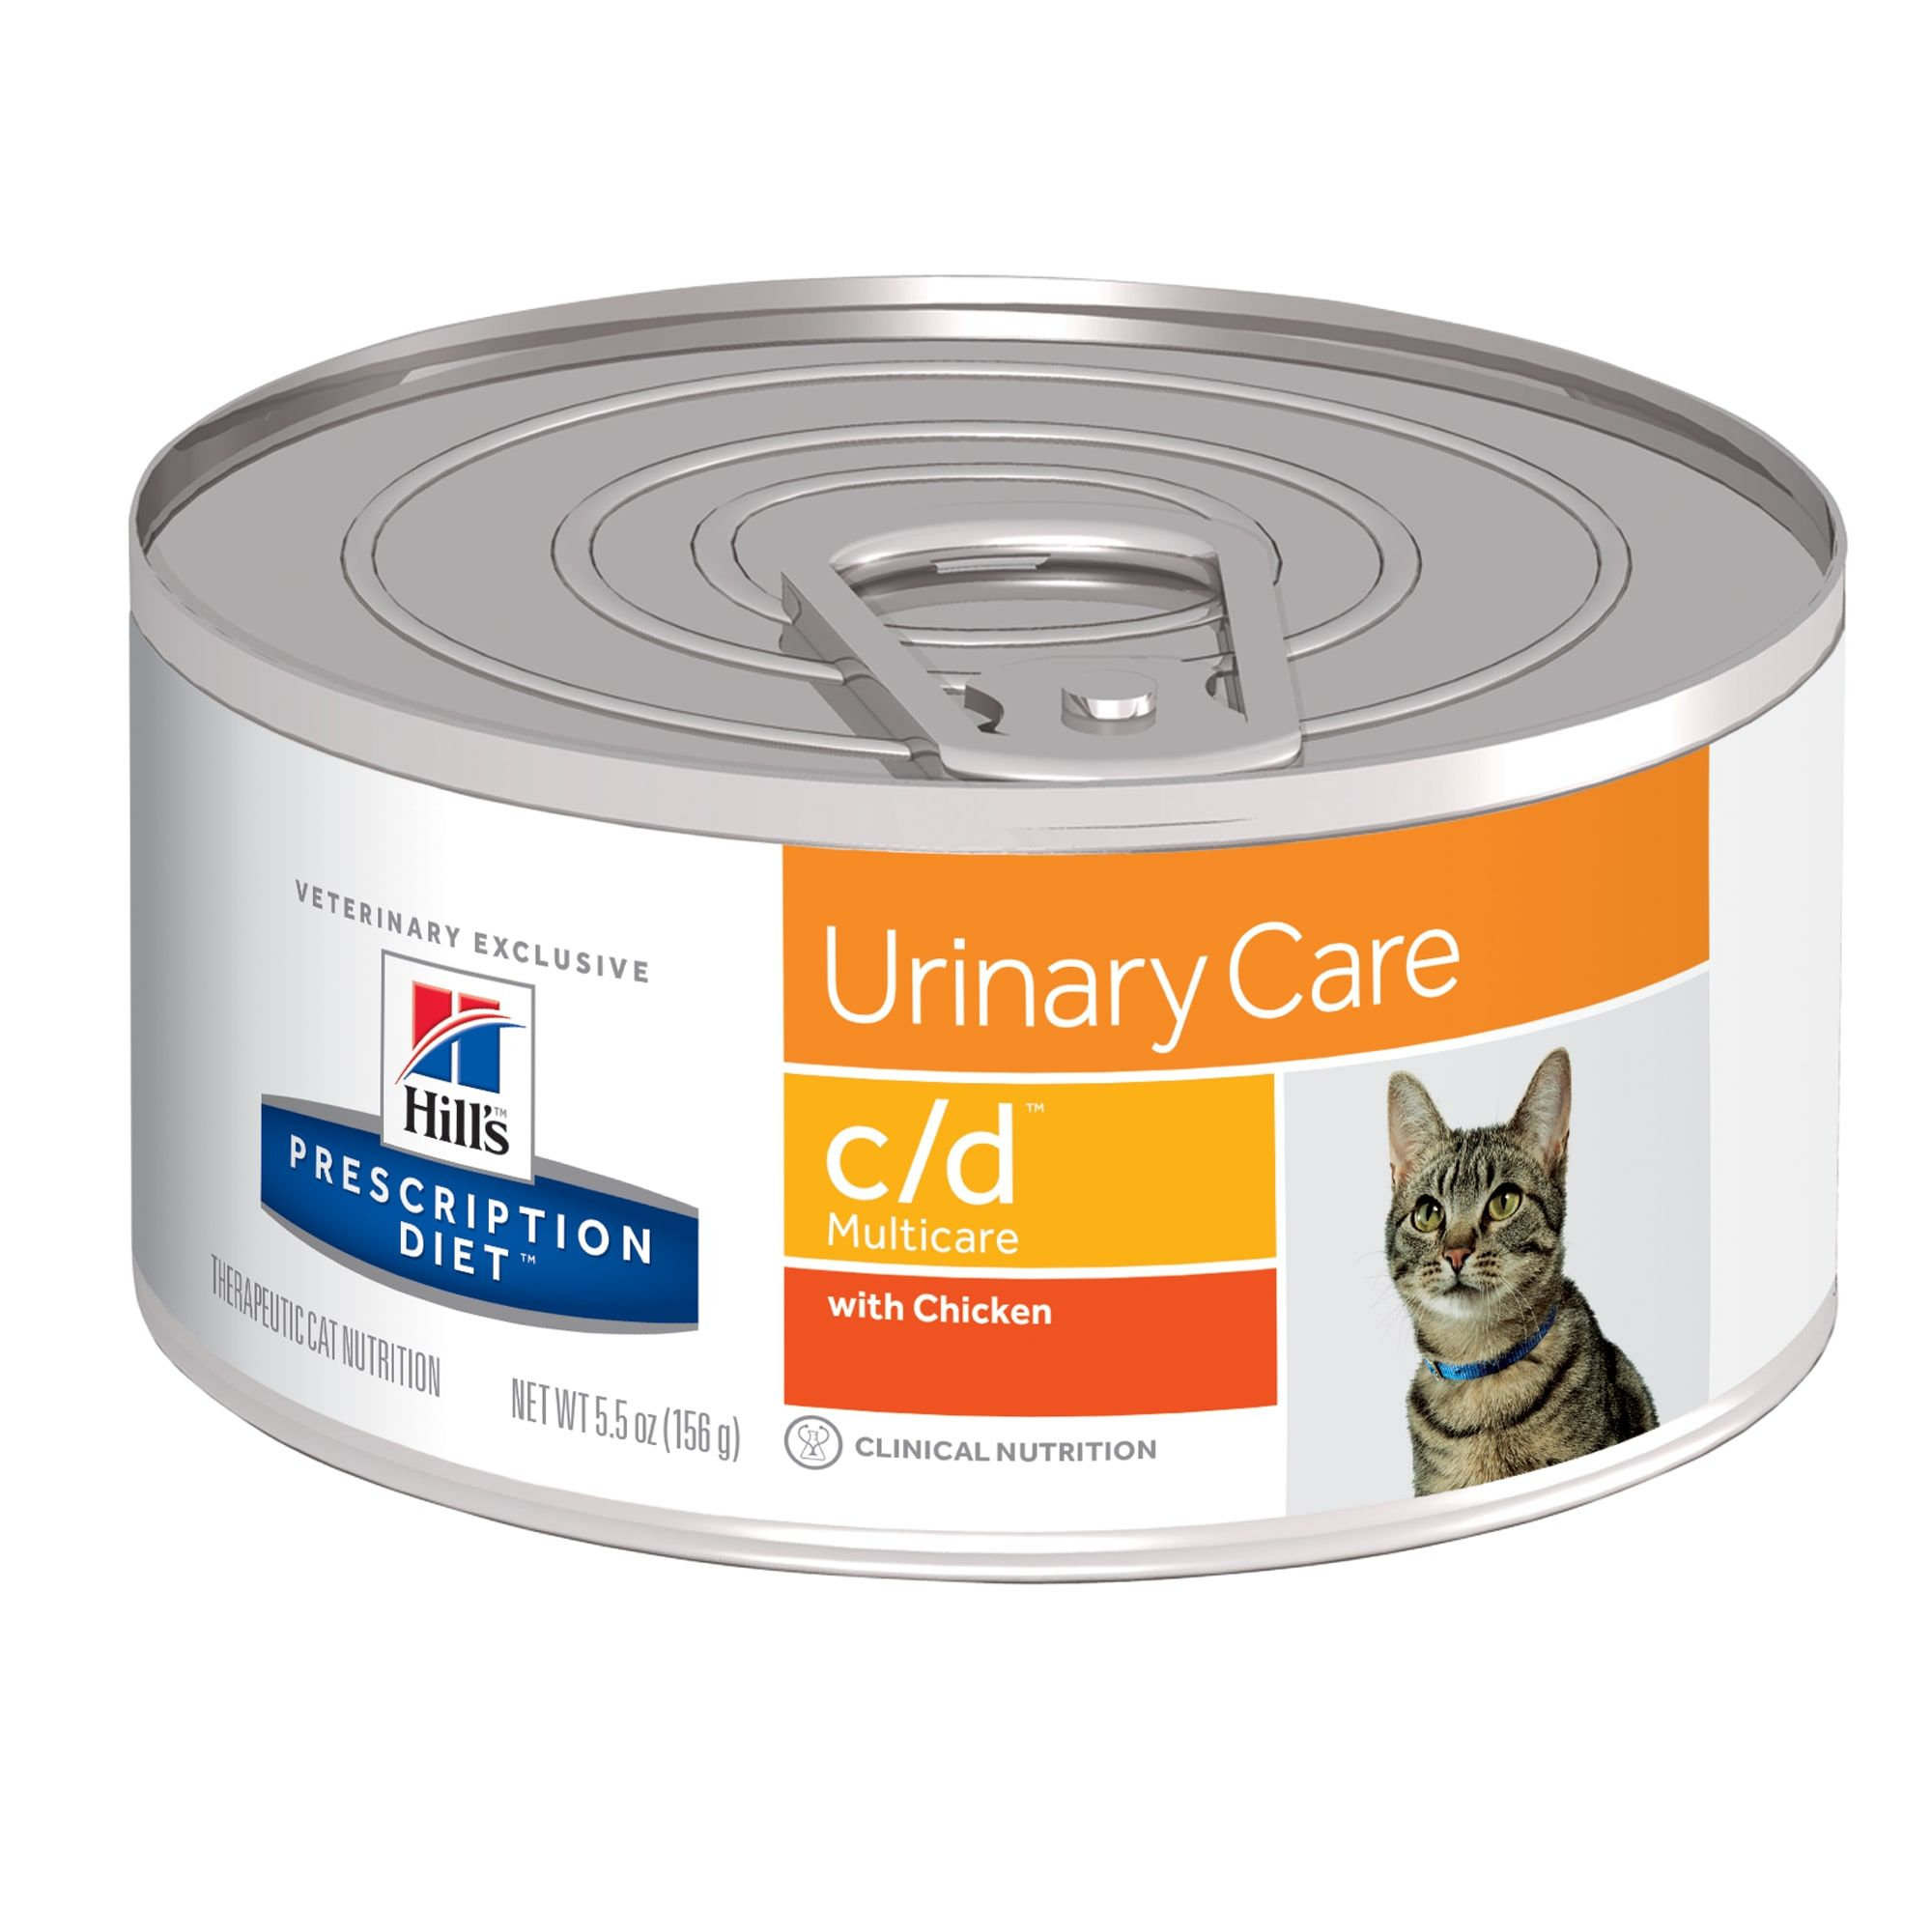 Hill S Prescription Diet C D Multicare Urinary Care With Chicken Canned Cat Food 5 5 Oz Case Of 24 24 In 2020 Canned Cat Food Hills Prescription Diet Wet Cat Food